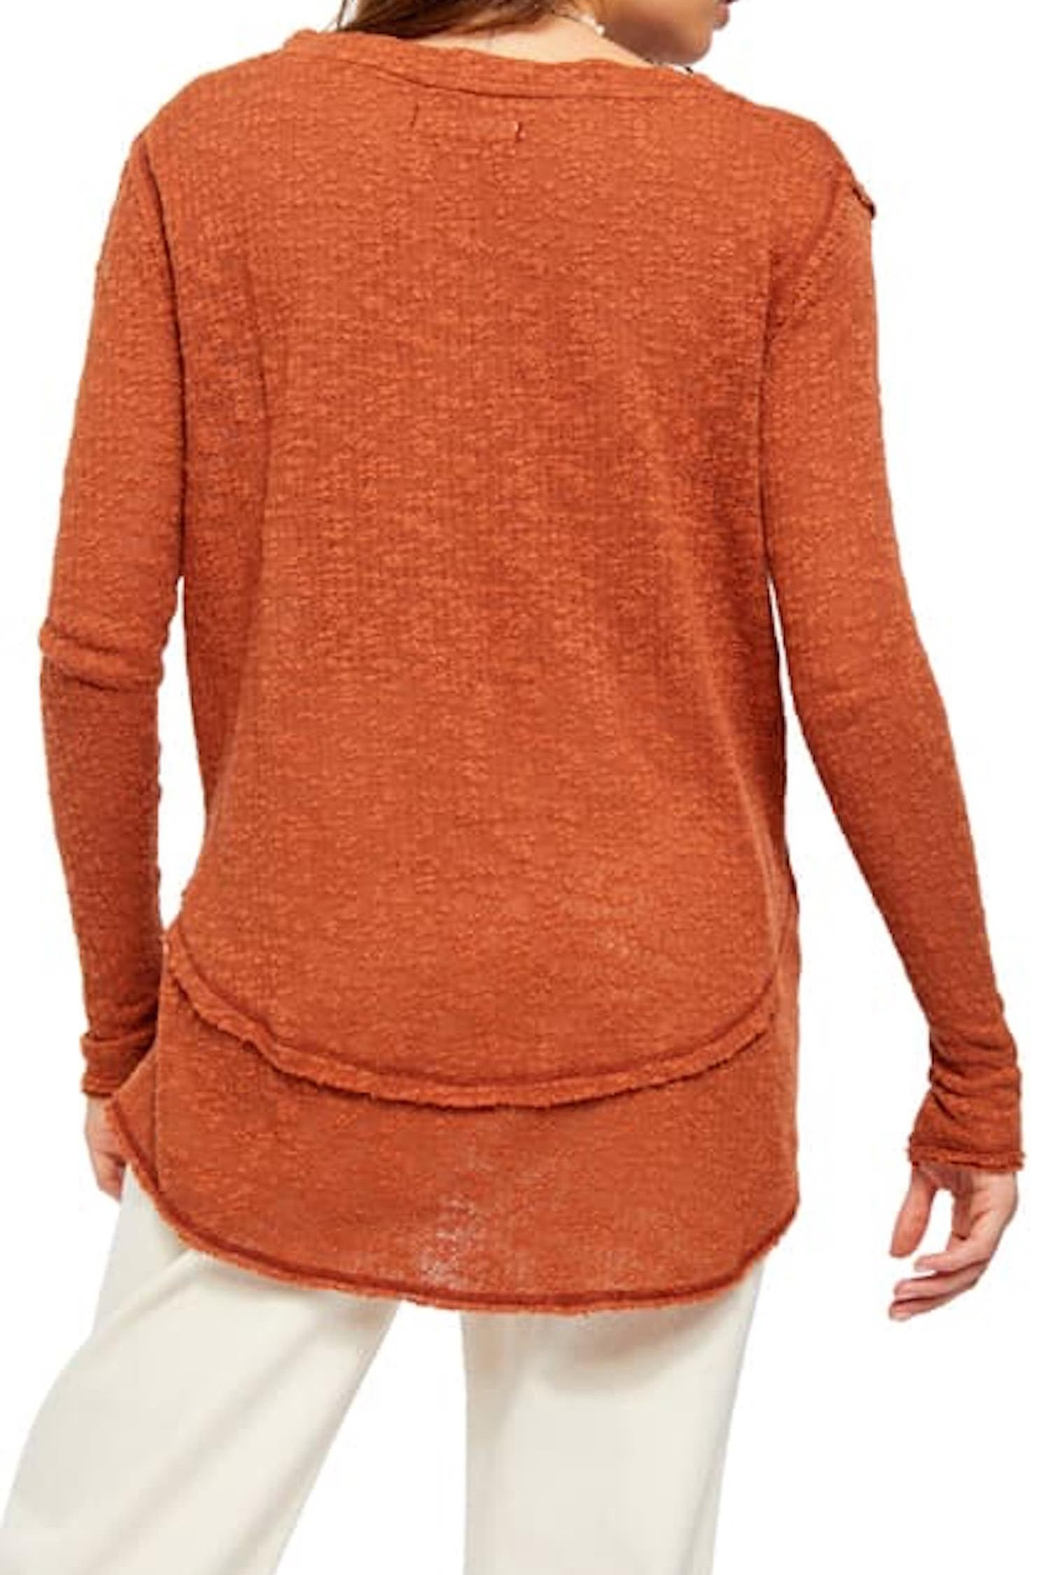 Free People Fp Ocean-Hacci Sweater - Back Cropped Image